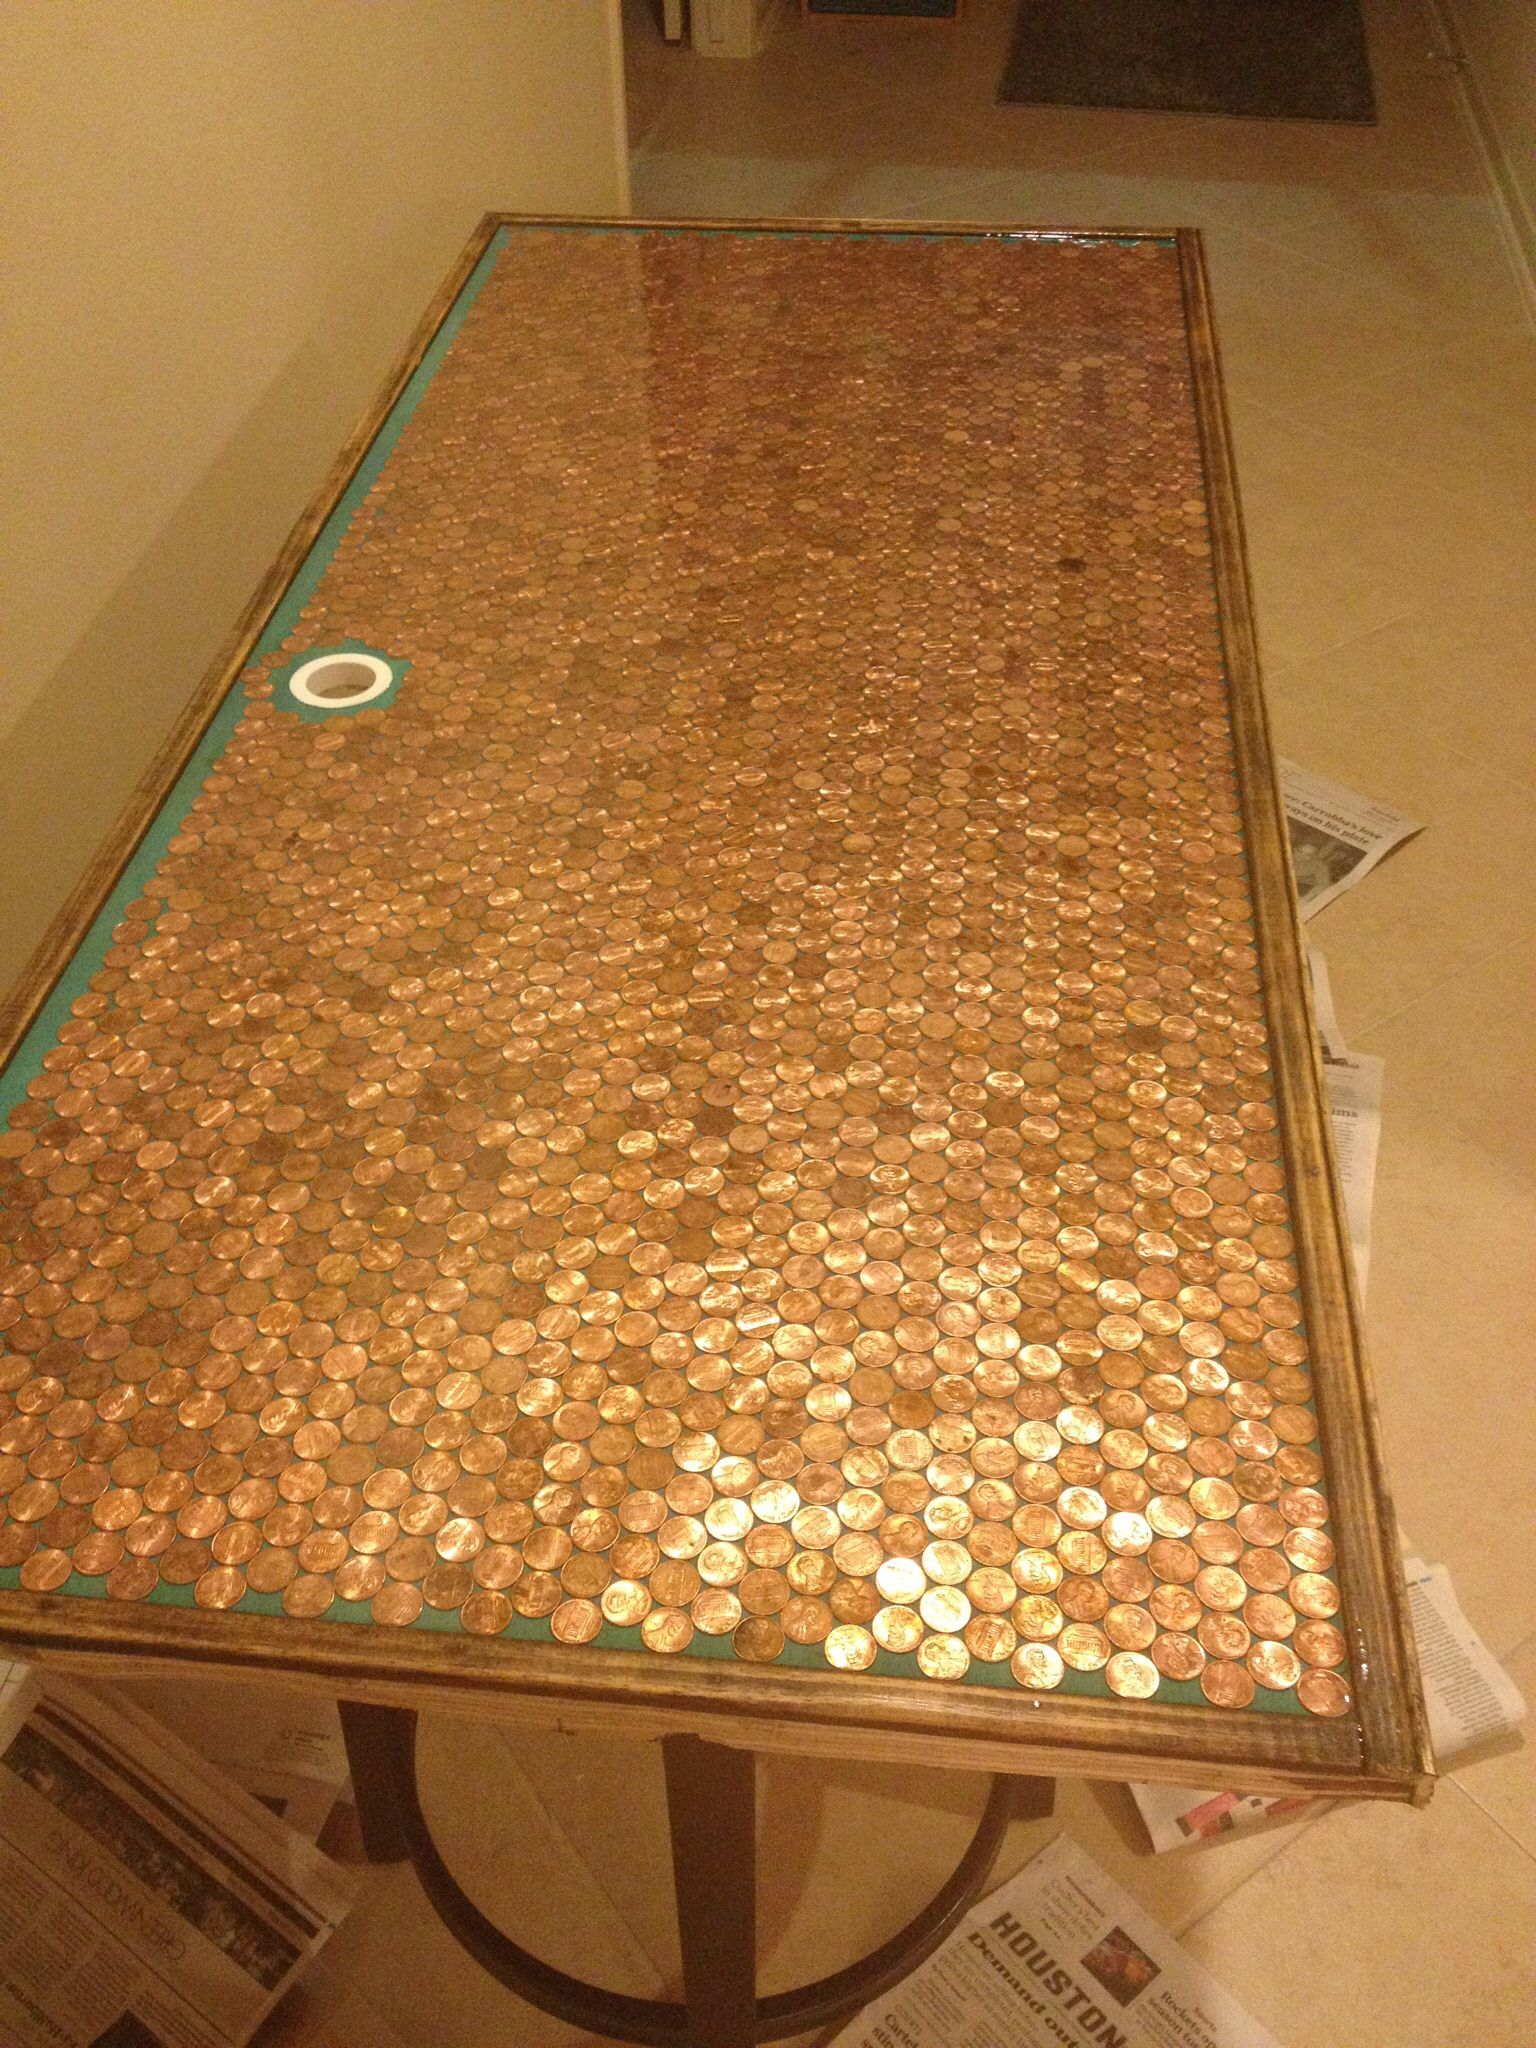 Penny Countertop | Penny Counter | Pinterest | Penny ...